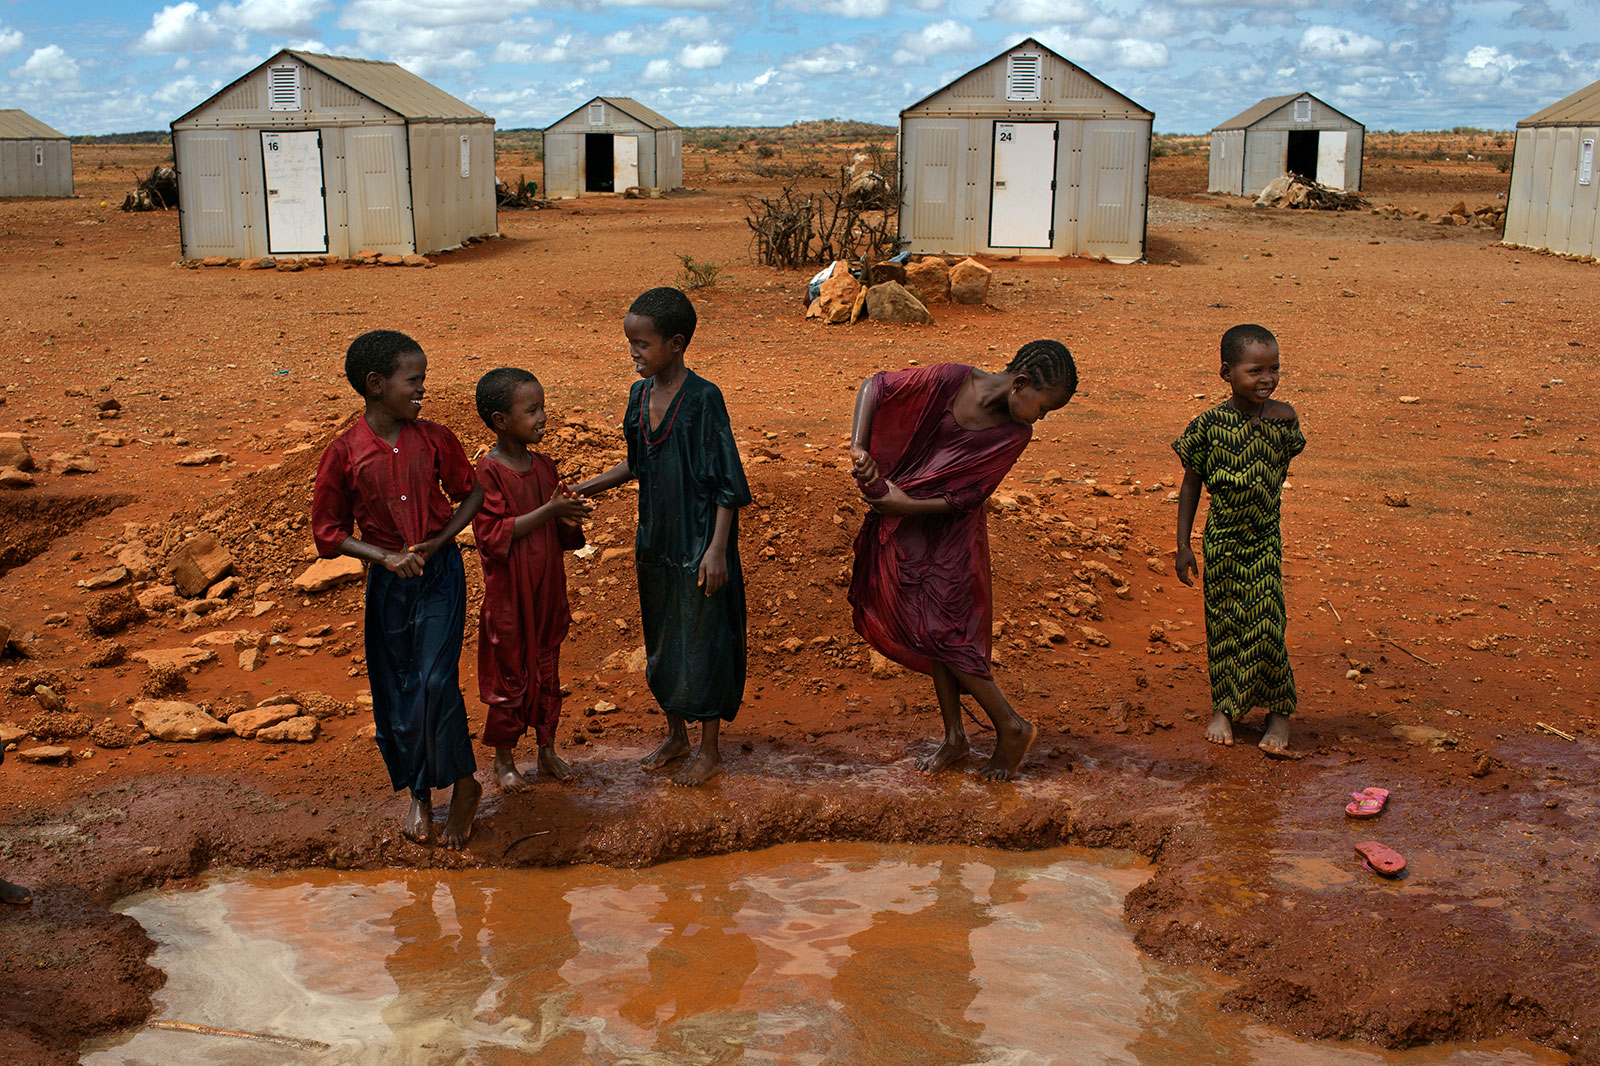 African children in front of temporary housing